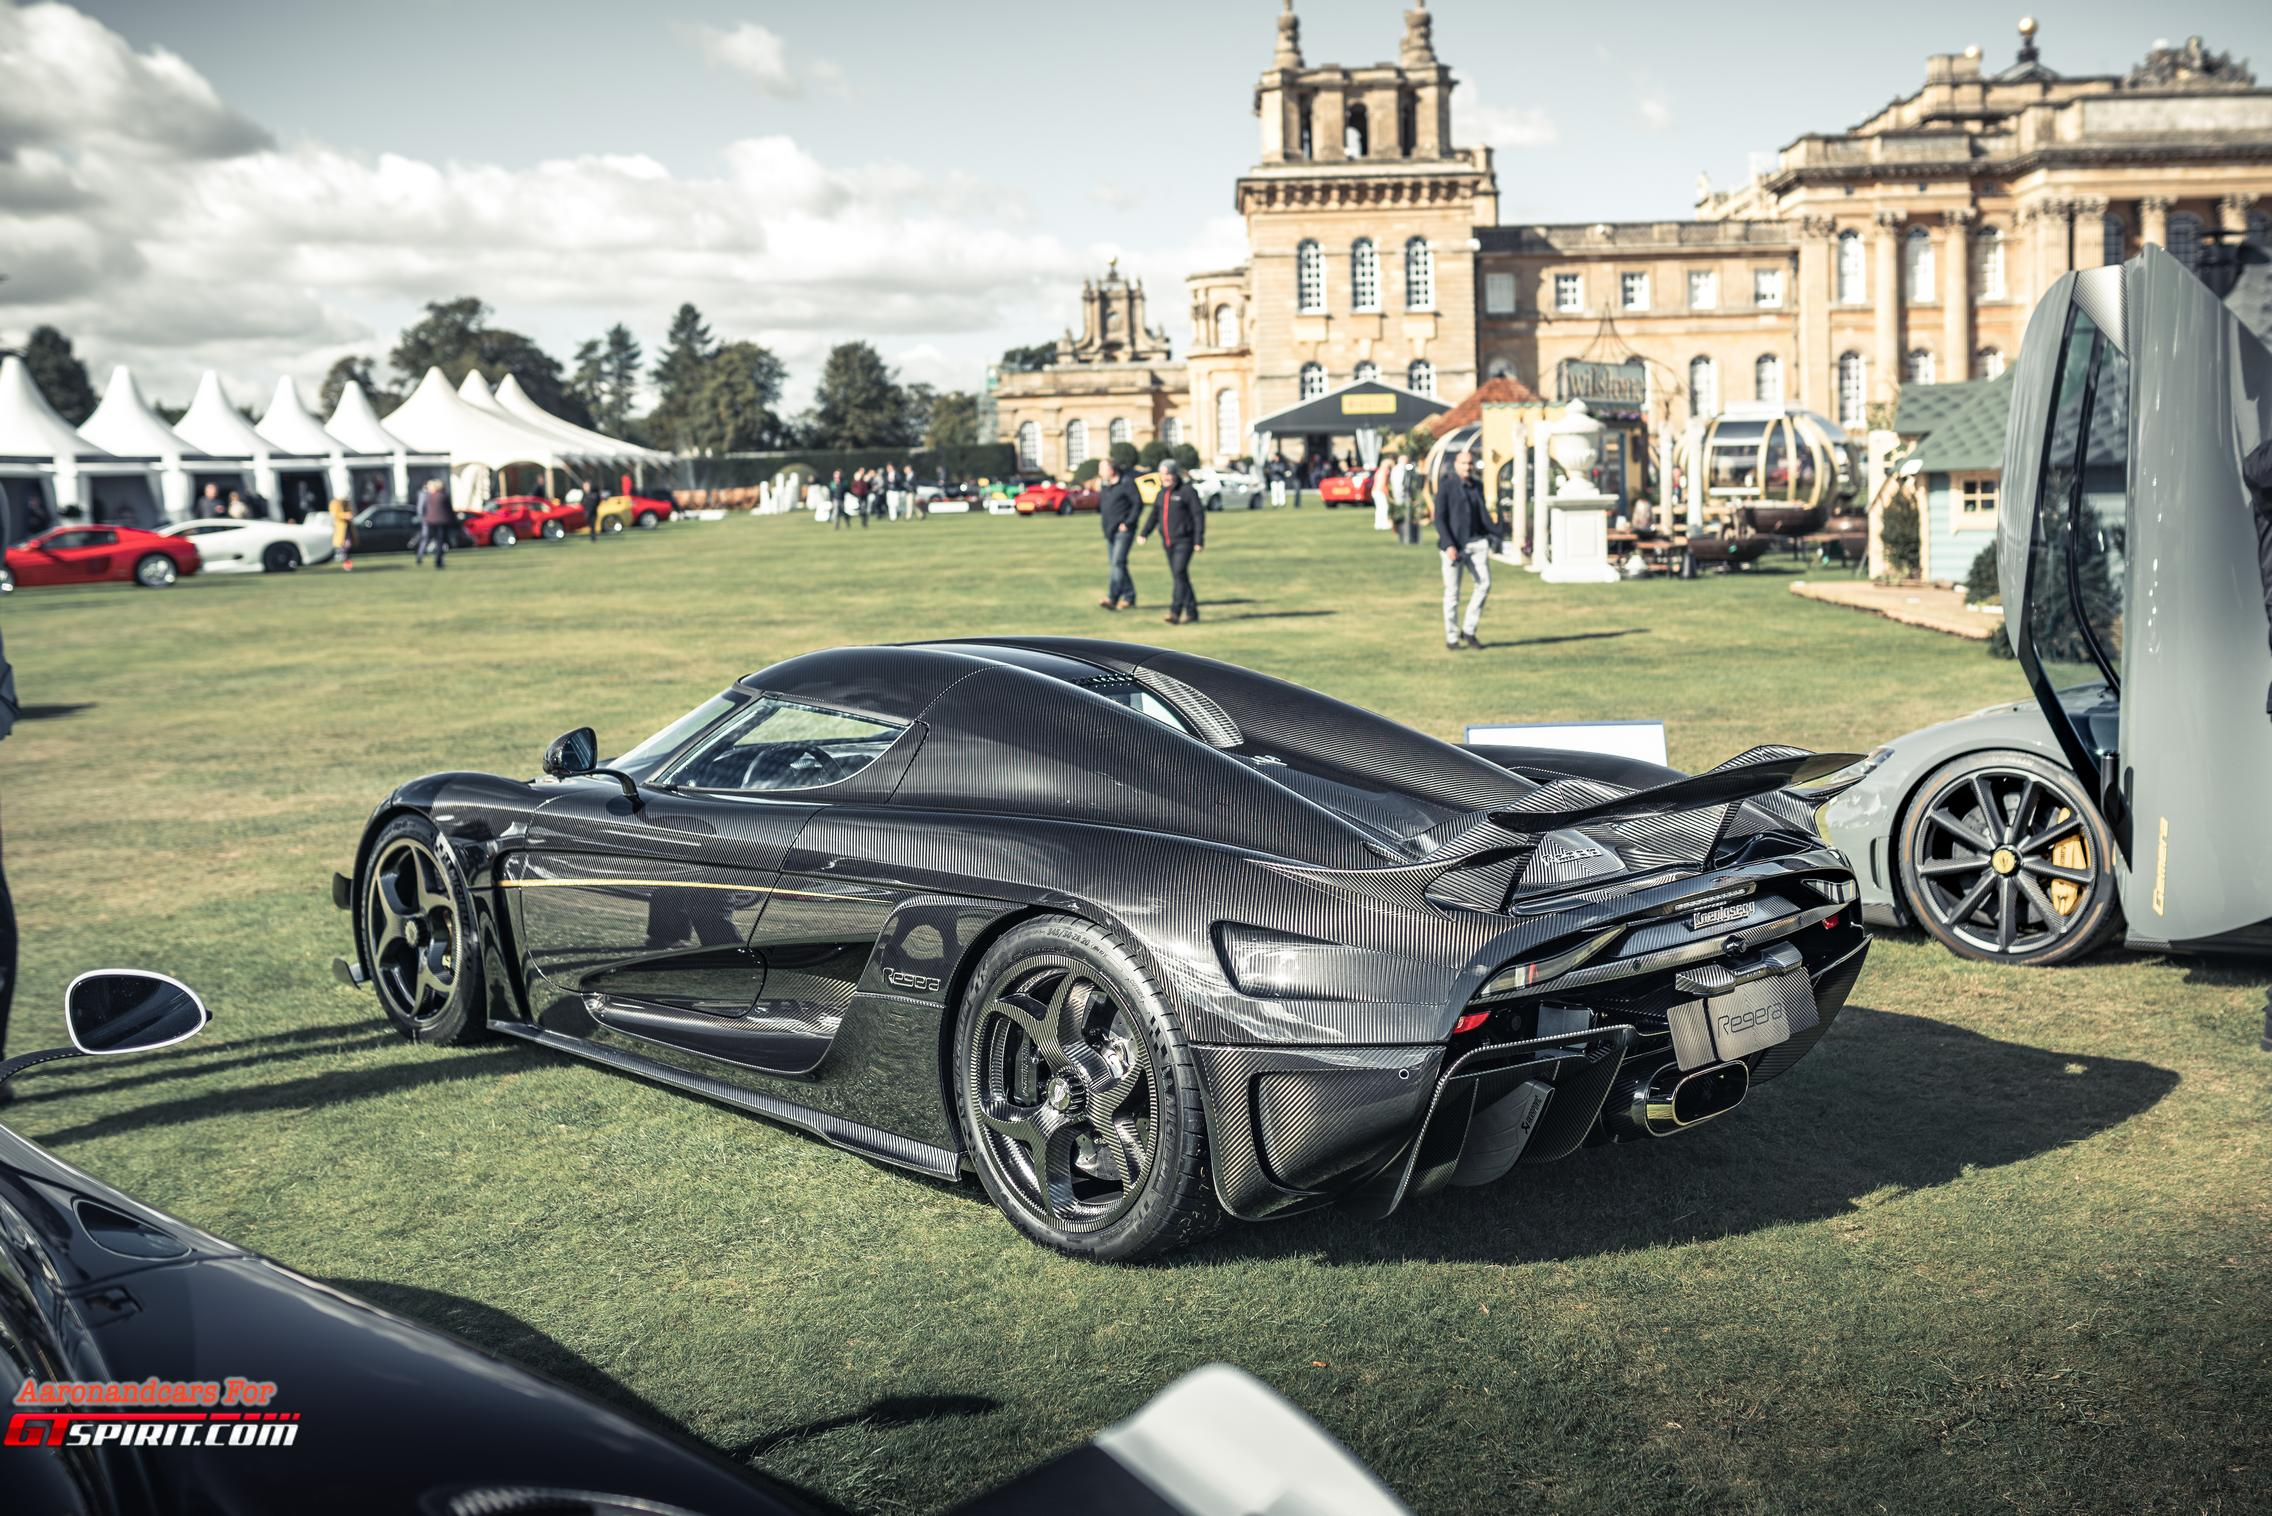 Salon Prive 2020 Regera Carbon